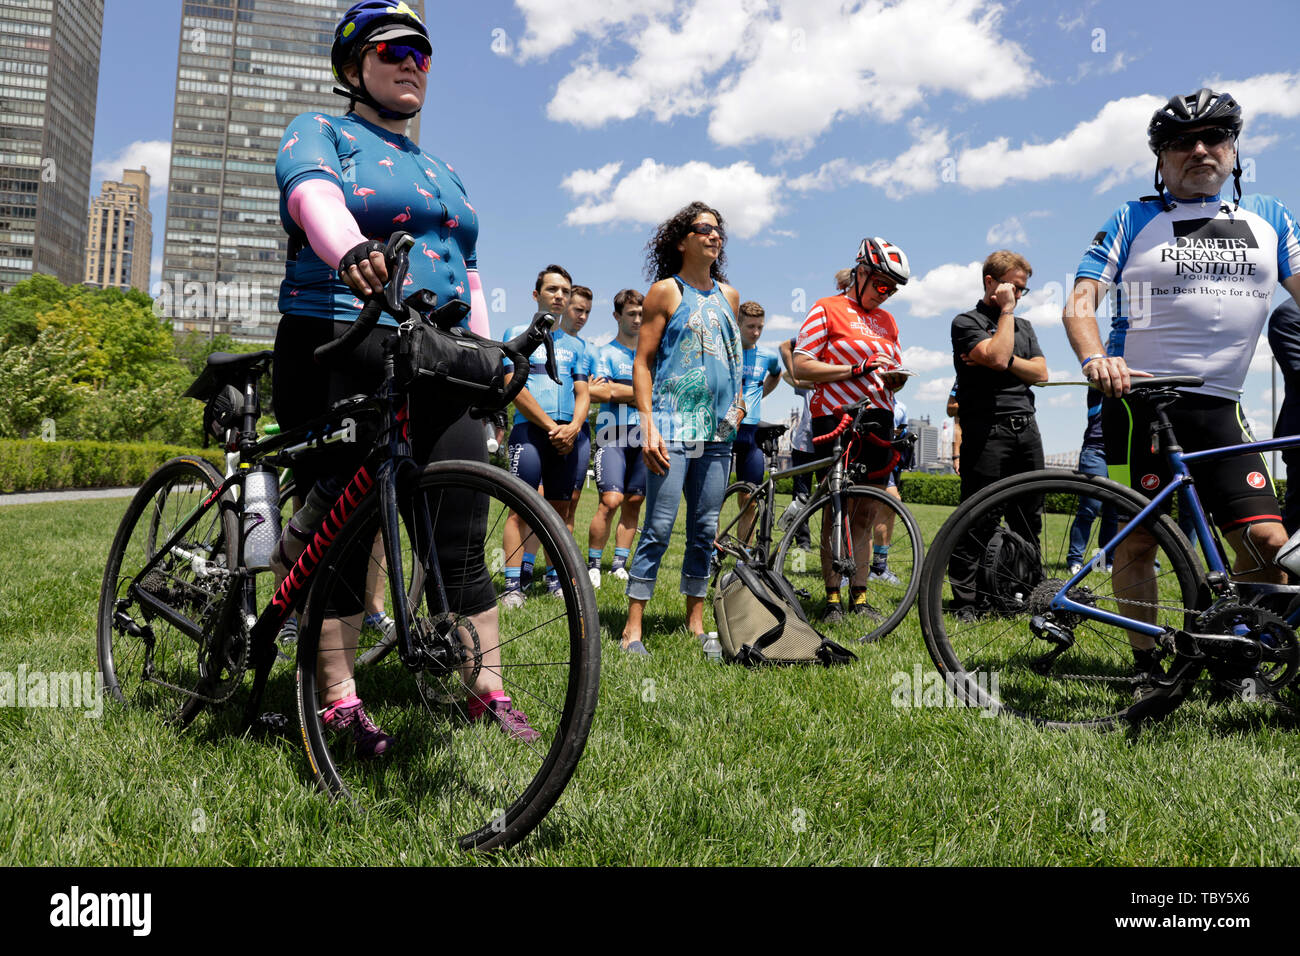 United Nations. 3rd June, 2019. Cyclists attend an event to commemorate the first World Bike Day at the UN headquarters in New York, June 3, 2019. The United Nations on Monday commemorated World Bicycle Day to acknowledge the uniqueness, longevity and versatility of bicycles. Credit: Li Muzi/Xinhua/Alamy Live News - Stock Image